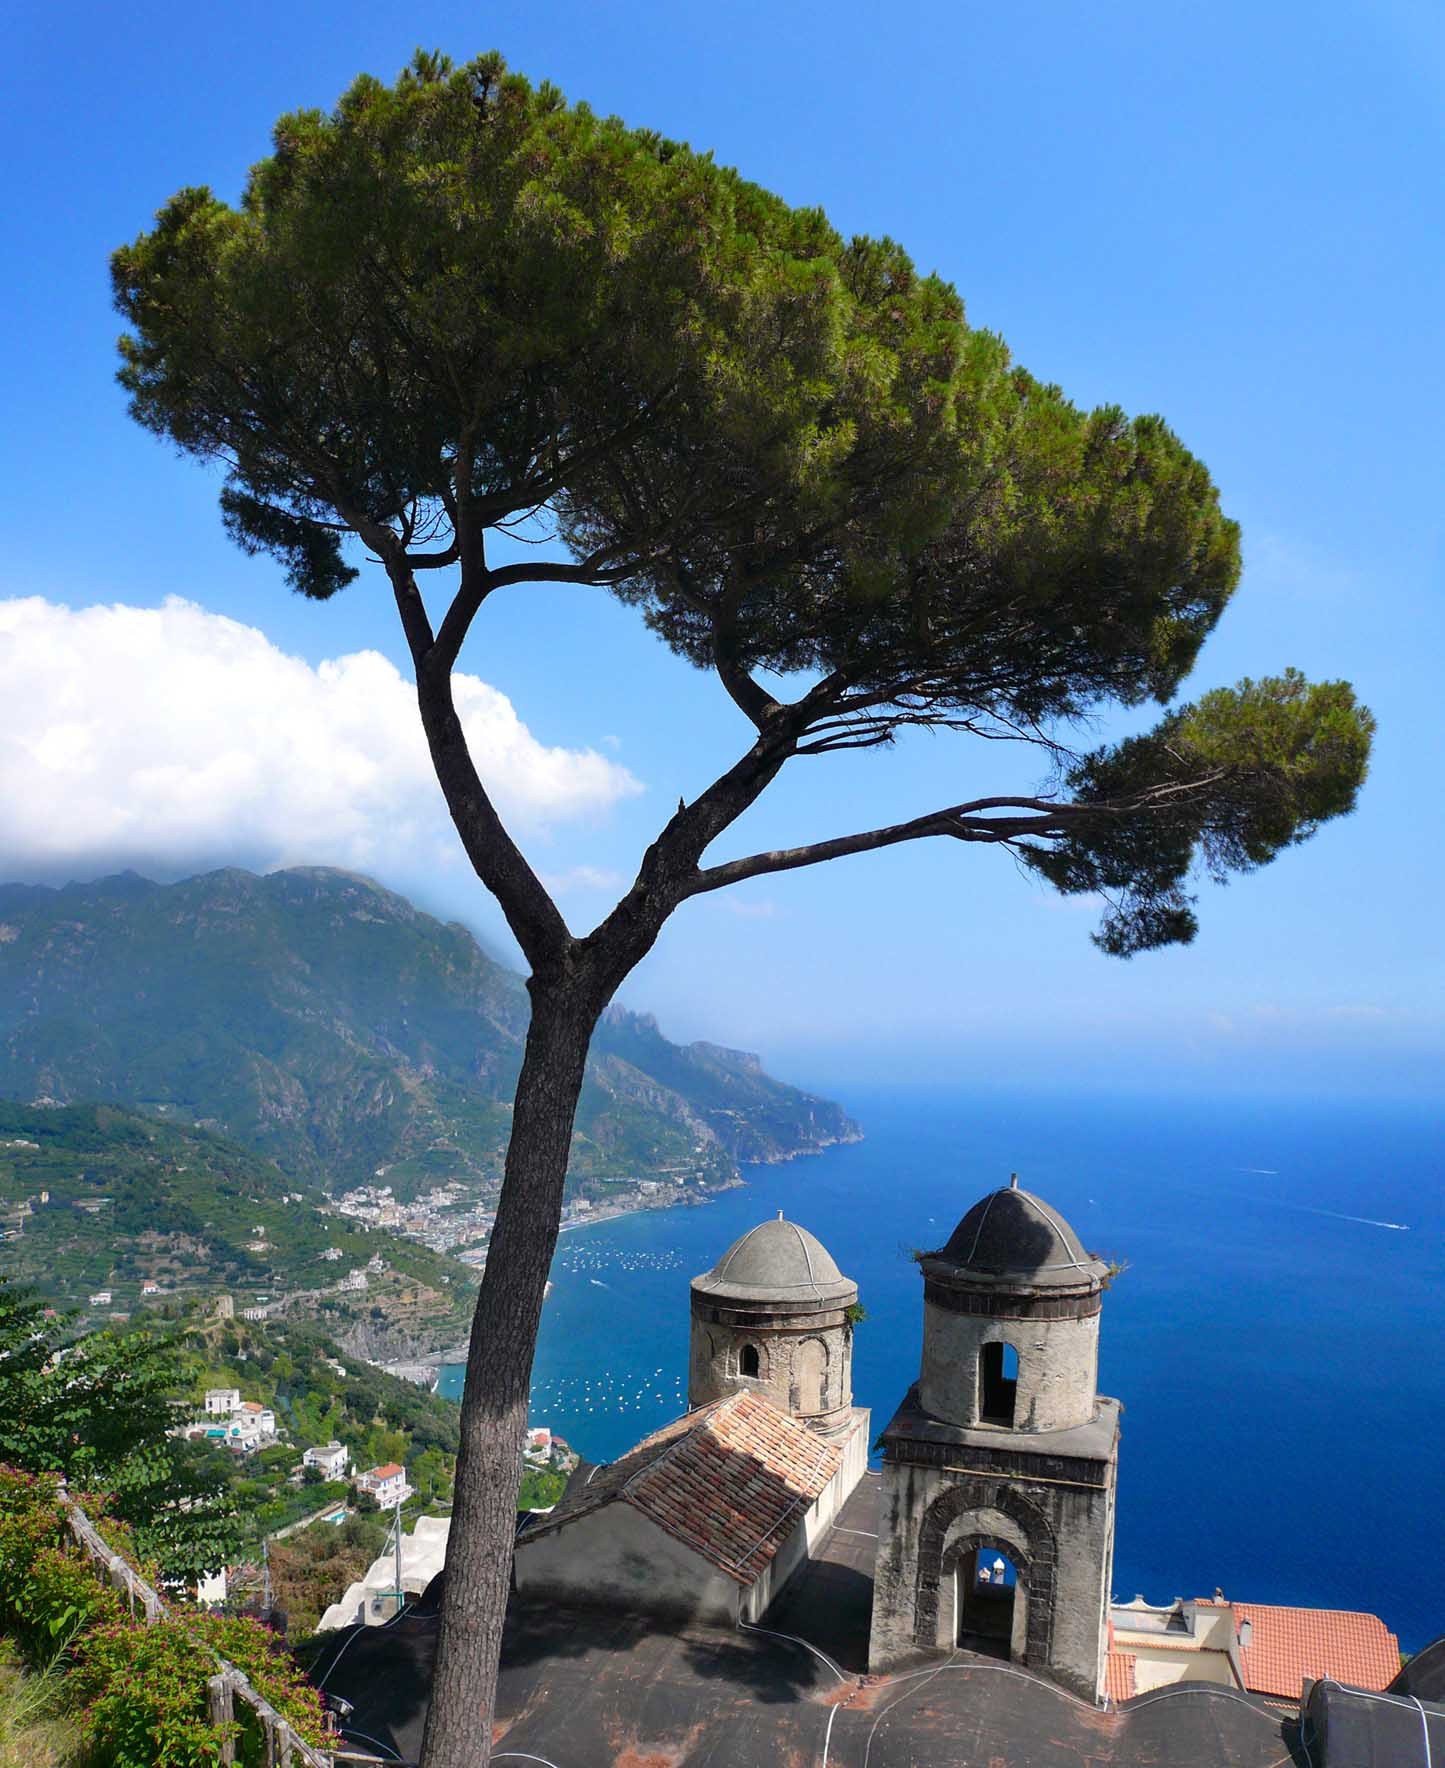 Amalfi coast, Sorrento